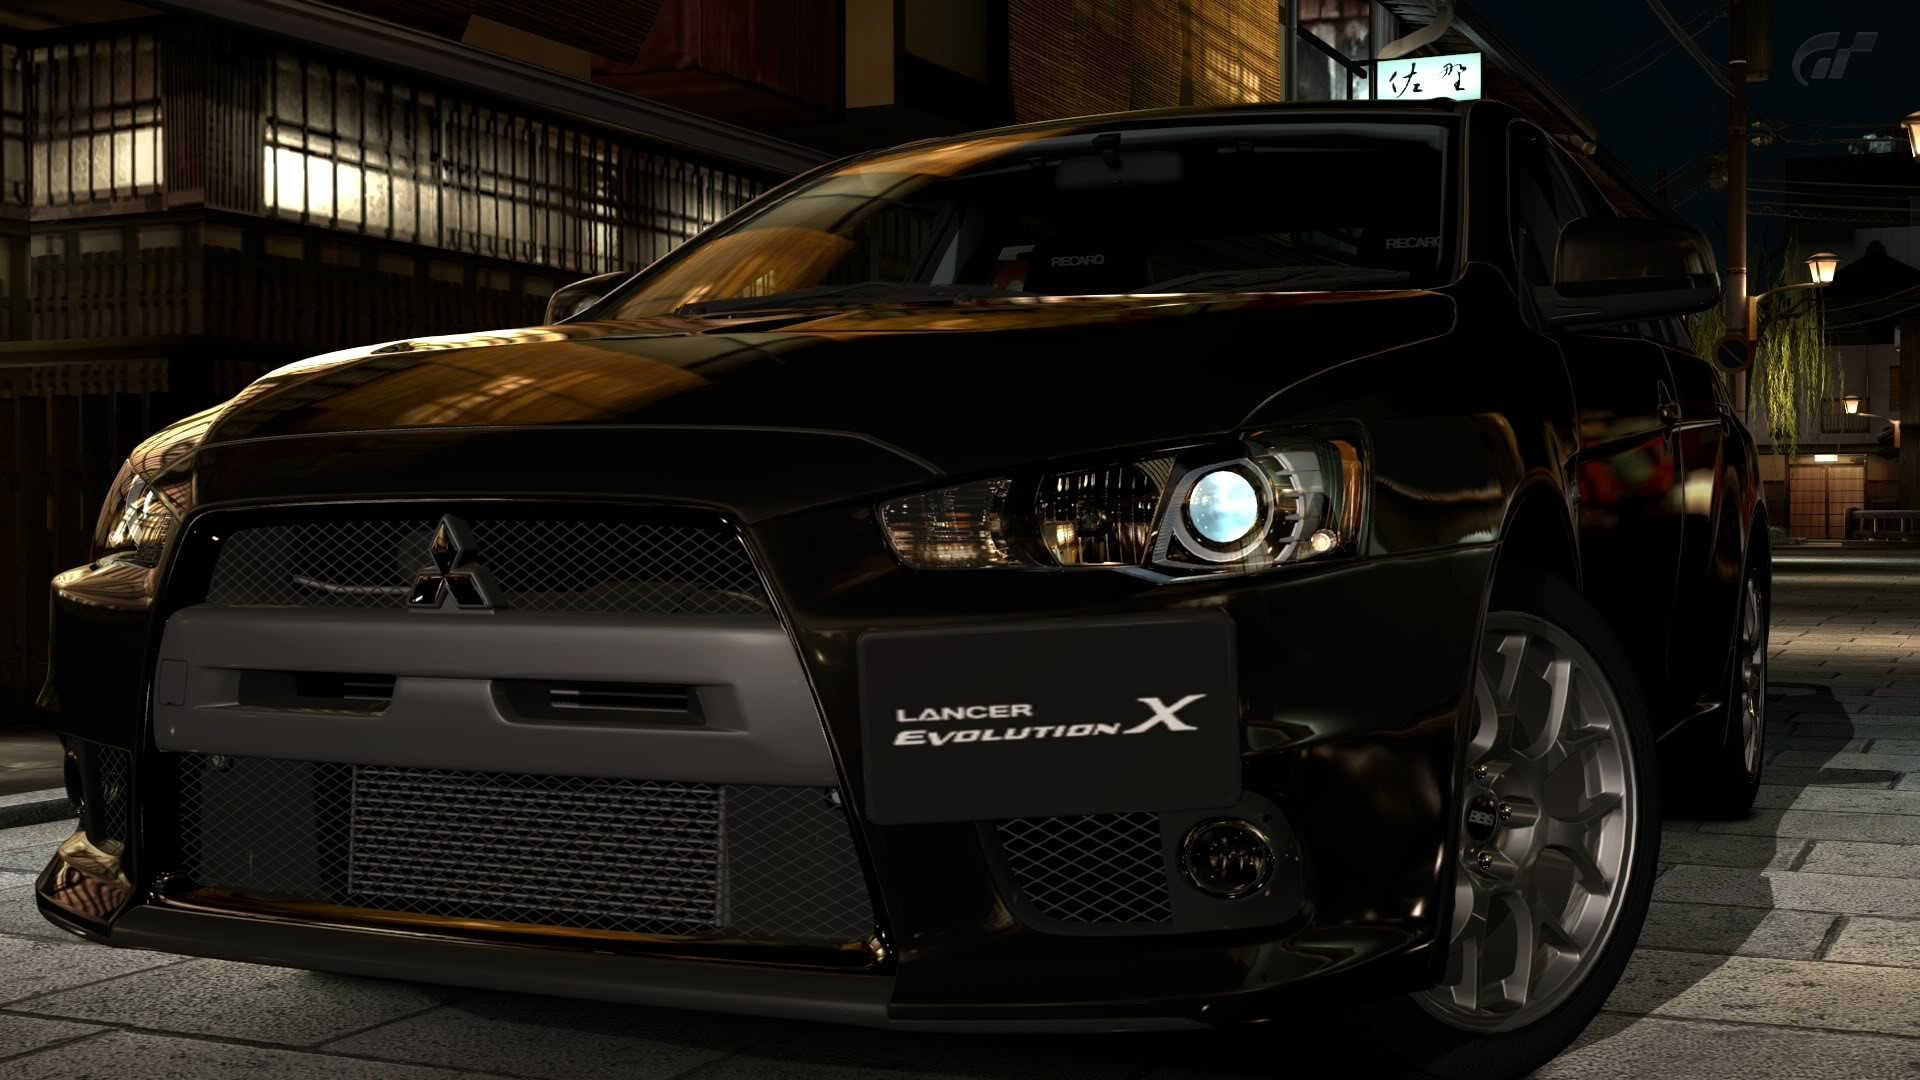 lancer evo x wallpaper ·①